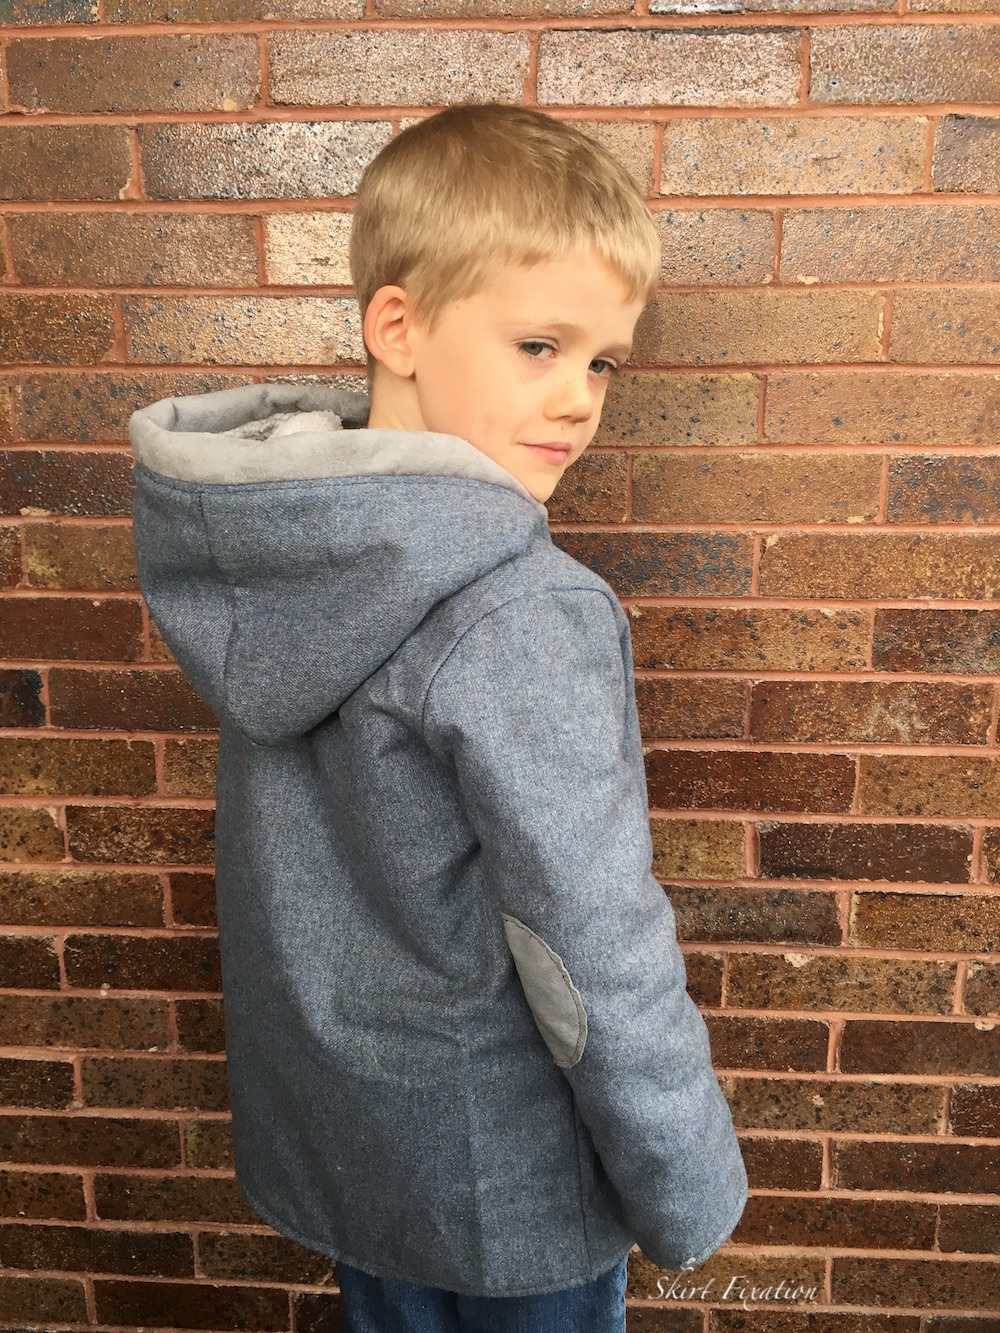 Downton Duffle Coat sewn by Skirt Fixation